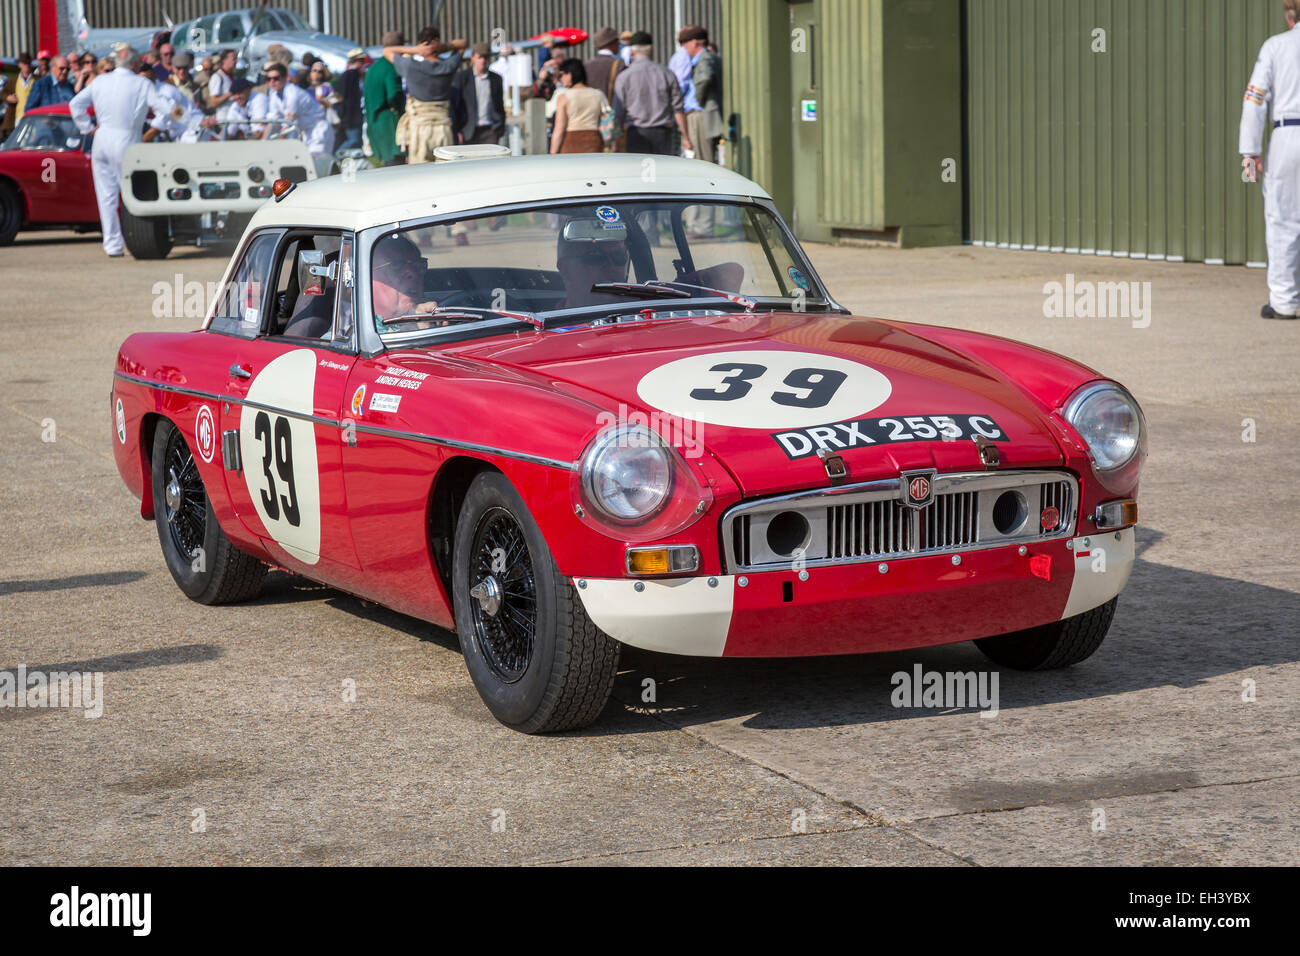 1964 mgb le mans with driver barry sidery smith fordwater trophy stock photo 79377982 alamy. Black Bedroom Furniture Sets. Home Design Ideas